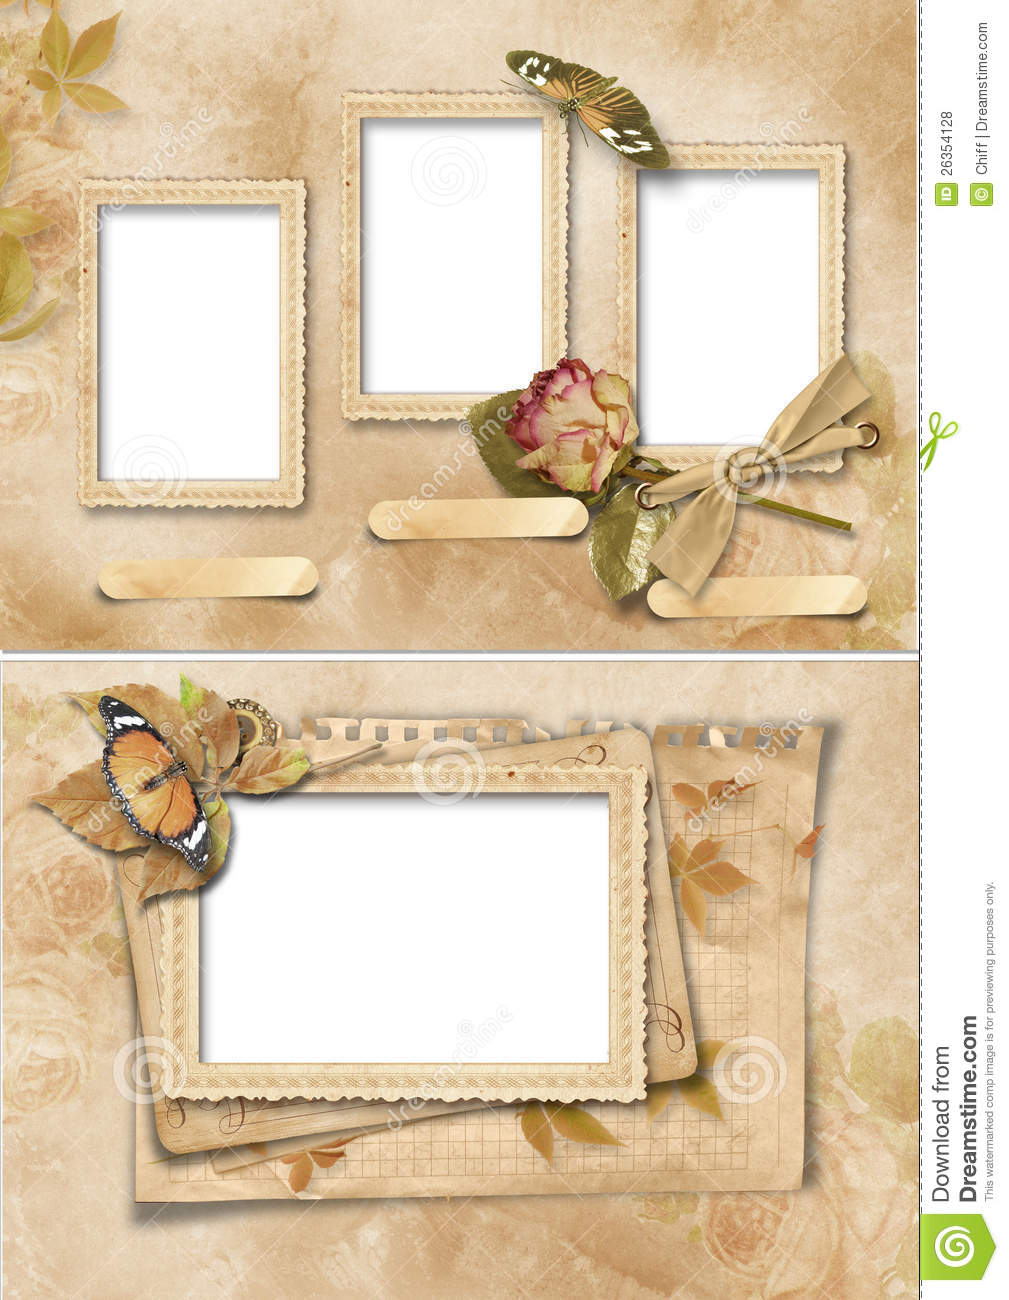 Vintage frames set family album stock illustration for How to make vintage frames